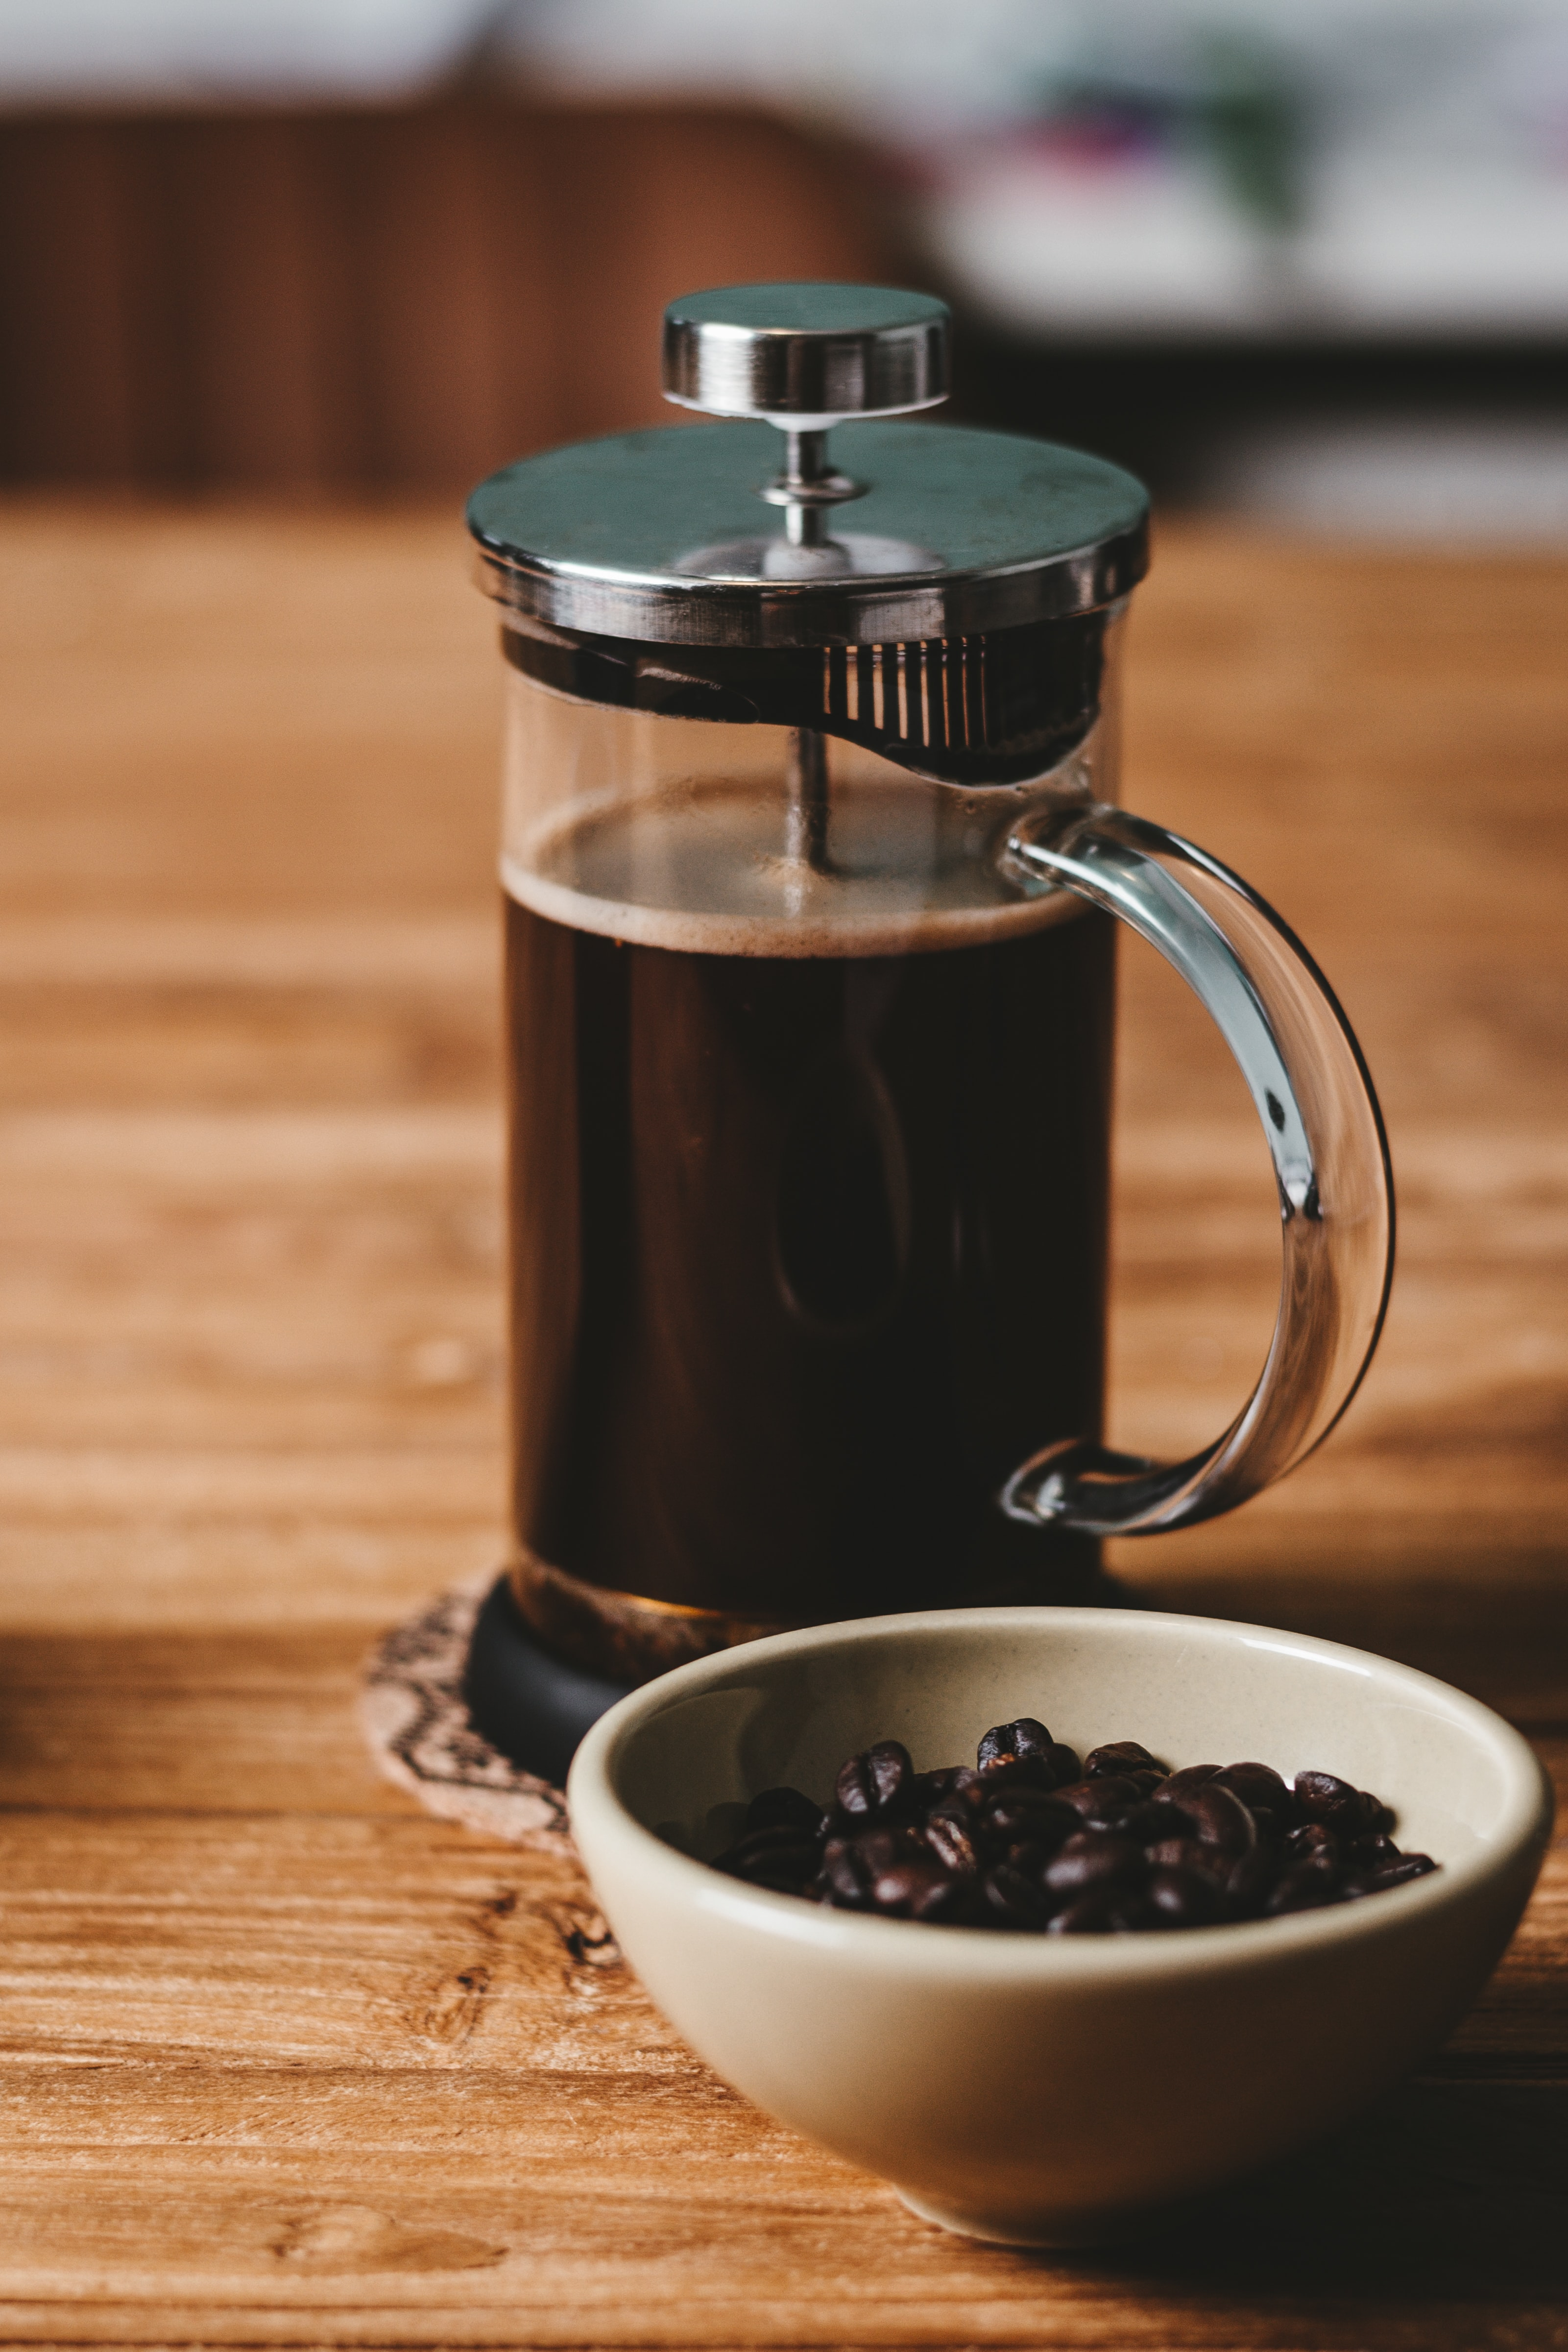 clear glass French press filled with milk